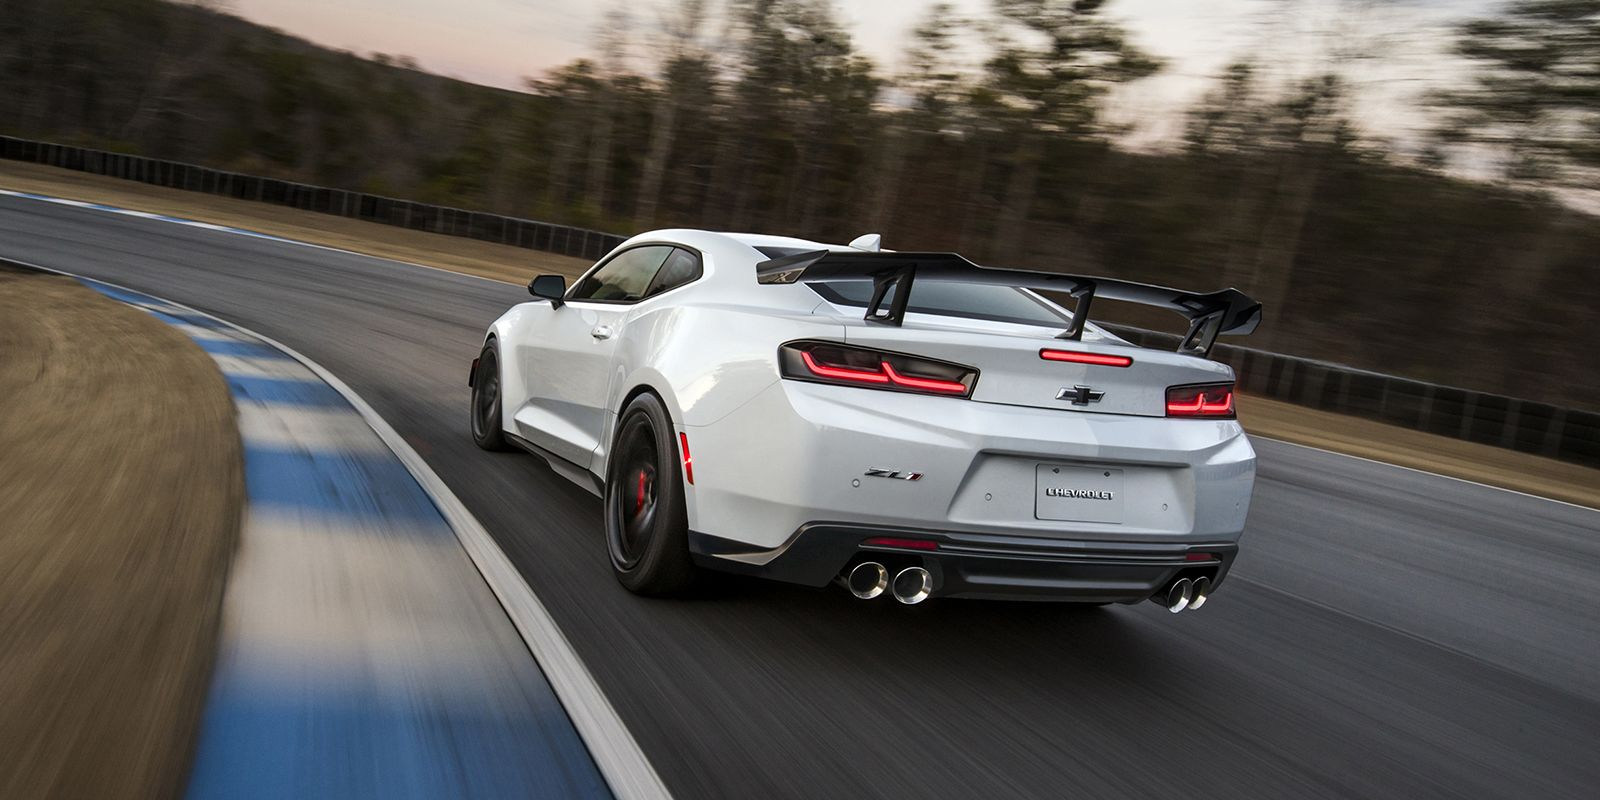 Camaro ZL1 1LE Price – Cost for 2018 Chevrolet Camaro ZL1 1LE